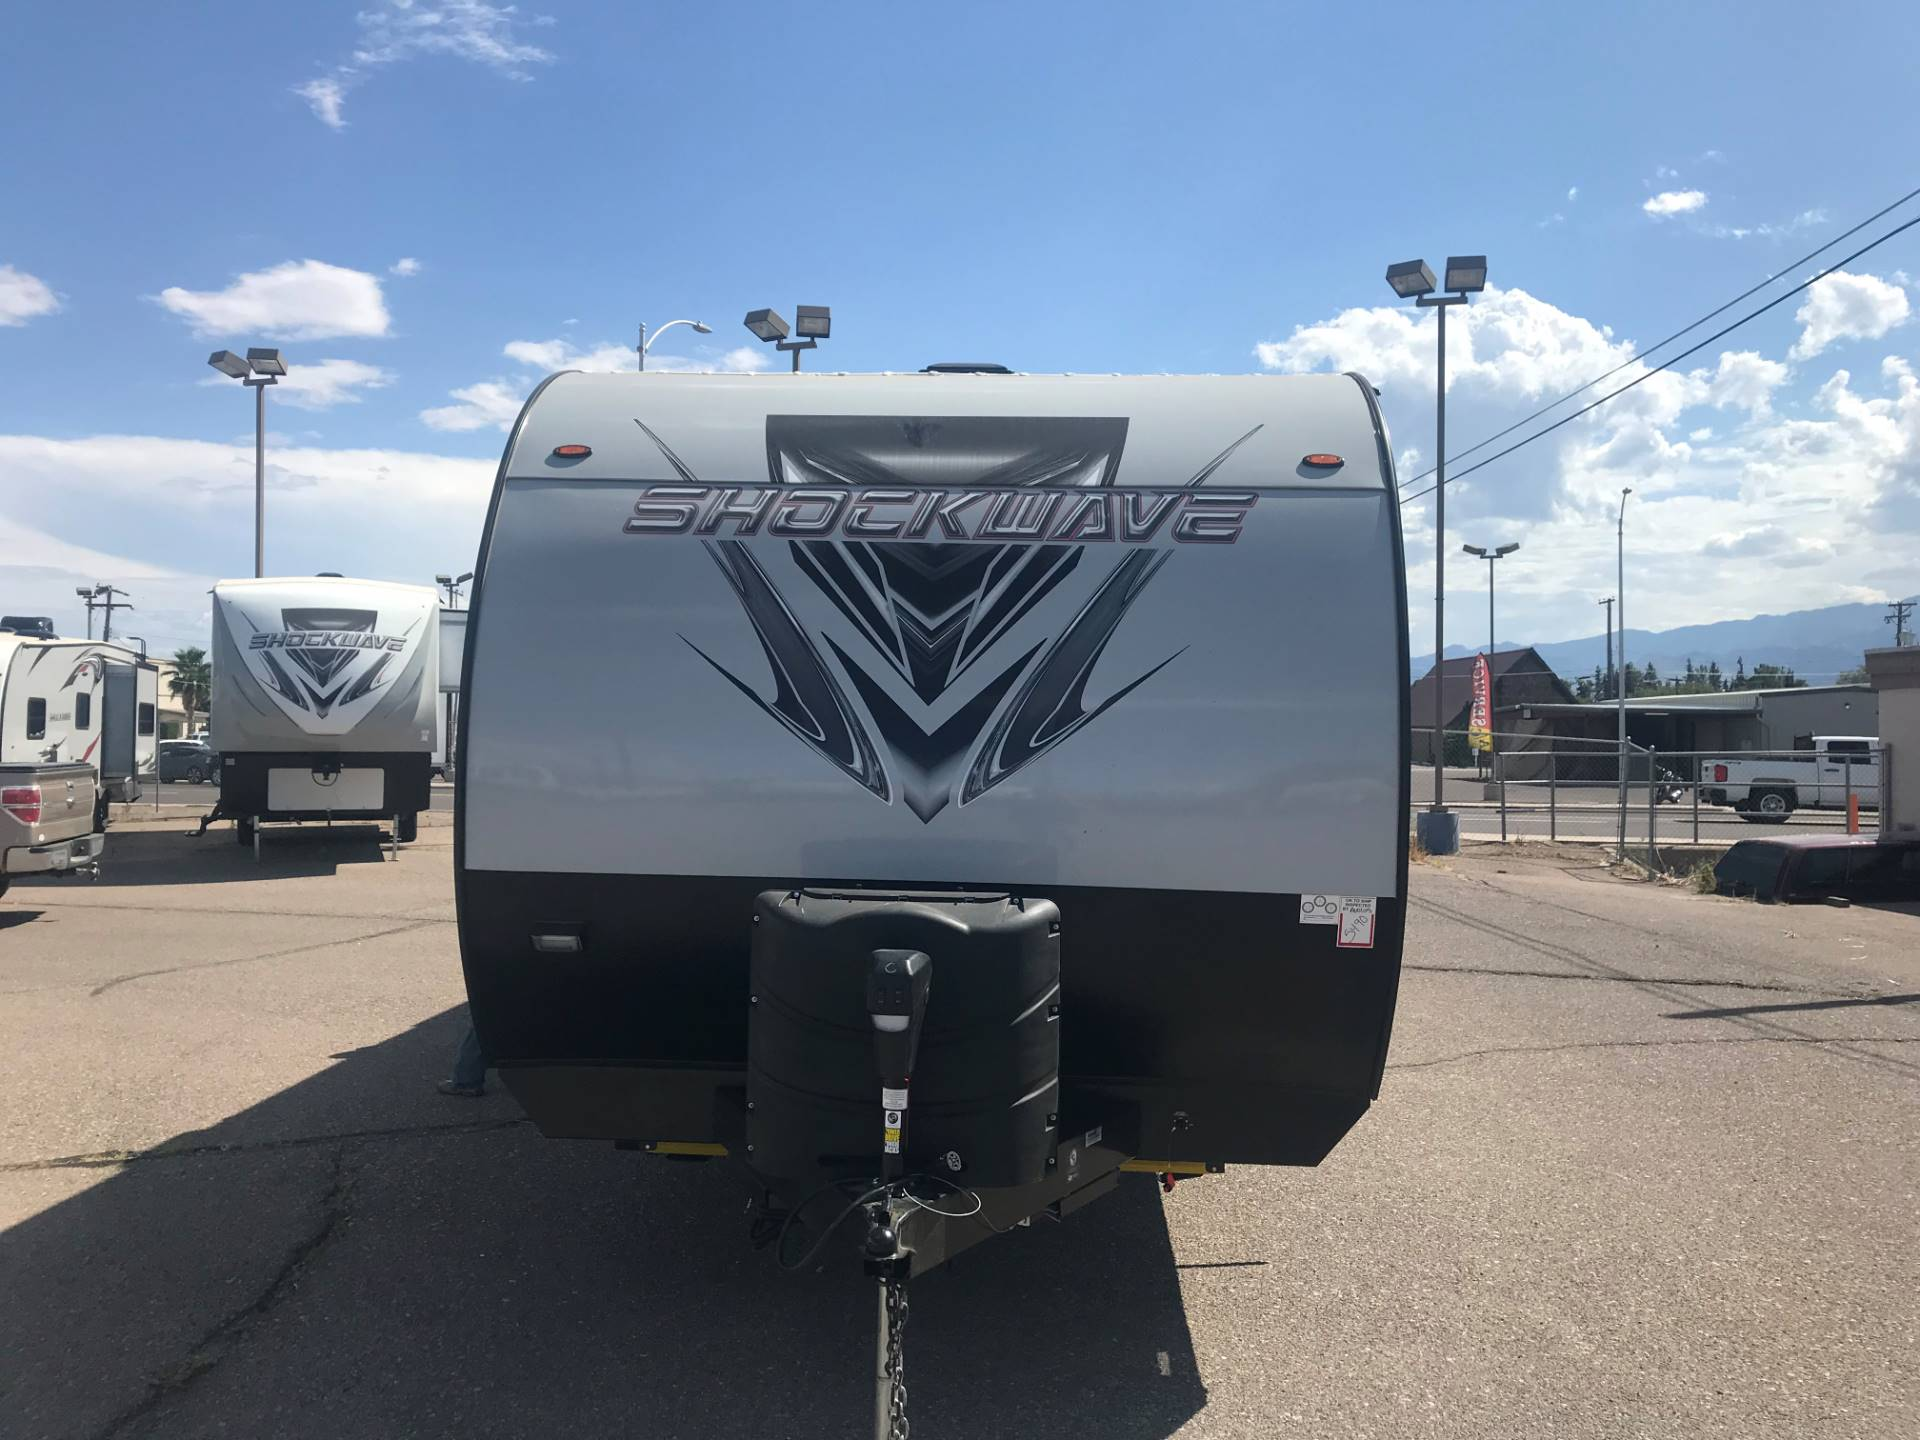 2020 FOREST RIVER Shockwave Toyhauler in Safford, Arizona - Photo 2